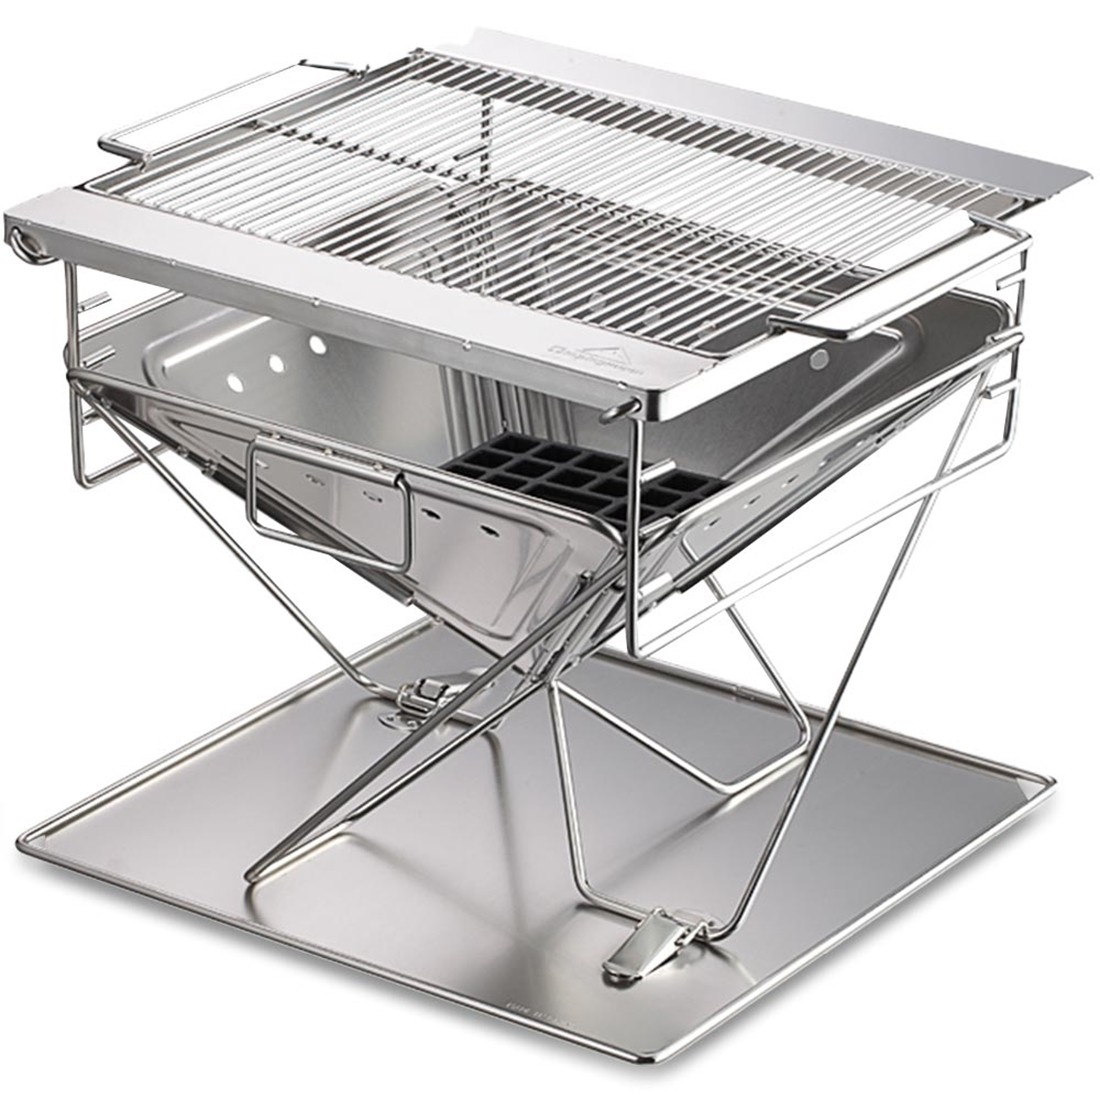 Camping Moon BBQ Stainless Steel Portable Folding Fire Pit